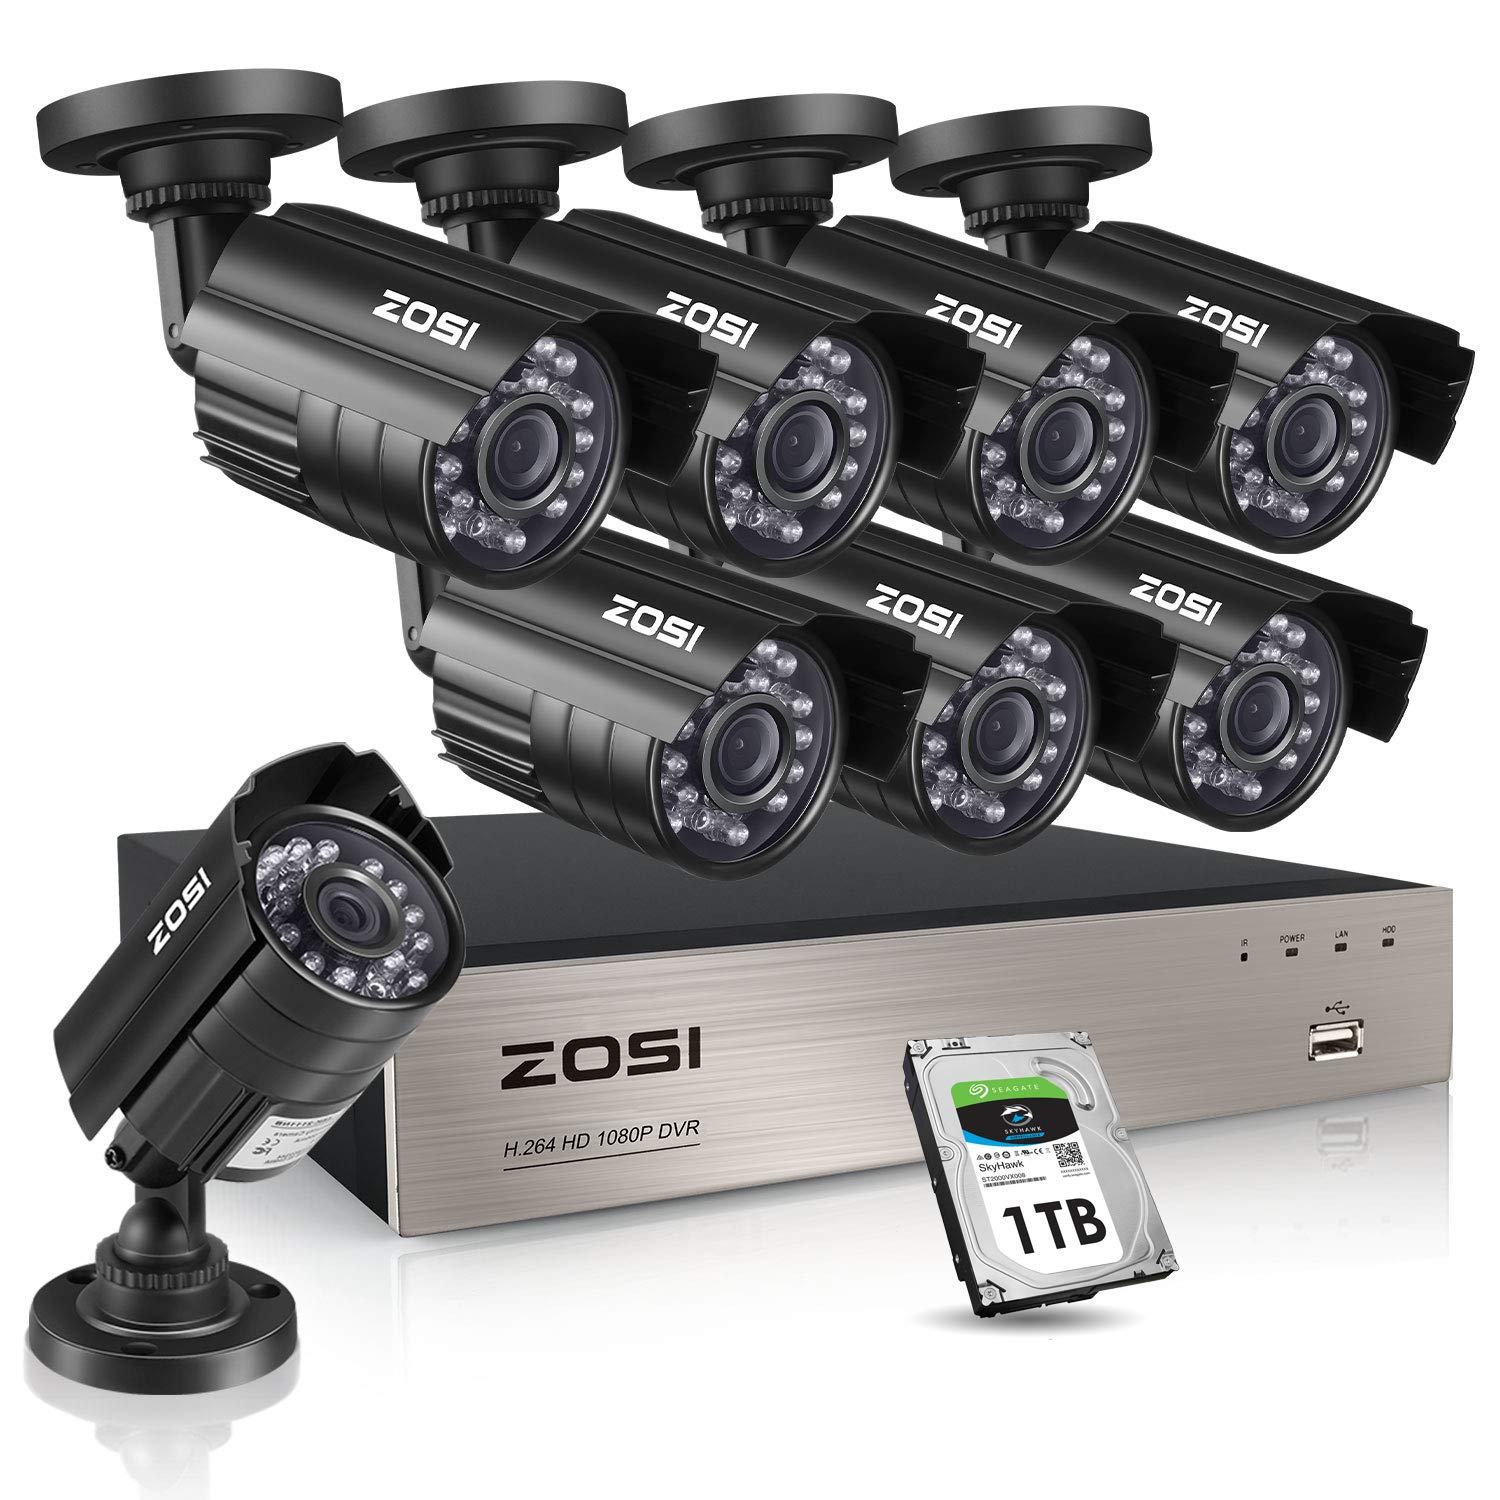 ZOSI 8CH 1080P Security Cameras System,8pcs 1080P Indoor Outdoor 1920TVL Weatherproof Surveillance Cameras, 8-Channel 1080P HD-TVI CCTV DVR System with 1TB Hard Drive for 24/7 Recording by ZOSI